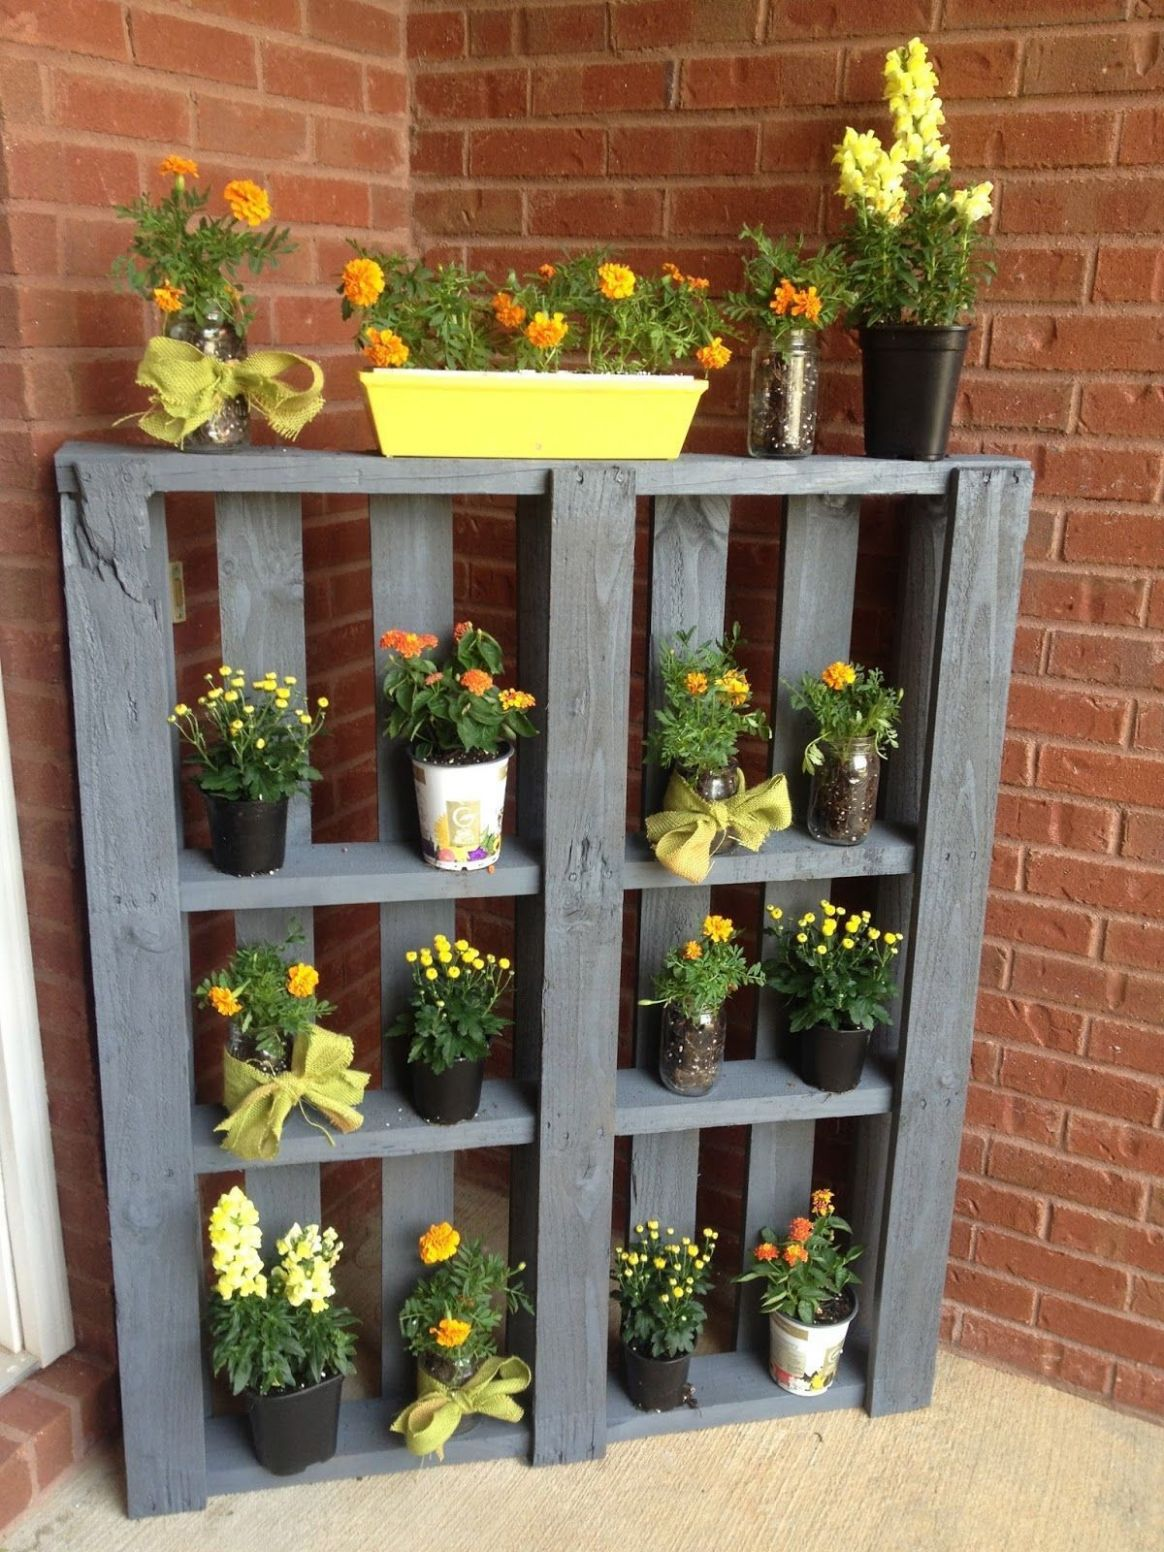 11 Garden Ideas With Pallets, Most Brilliant as well as Stunning ...